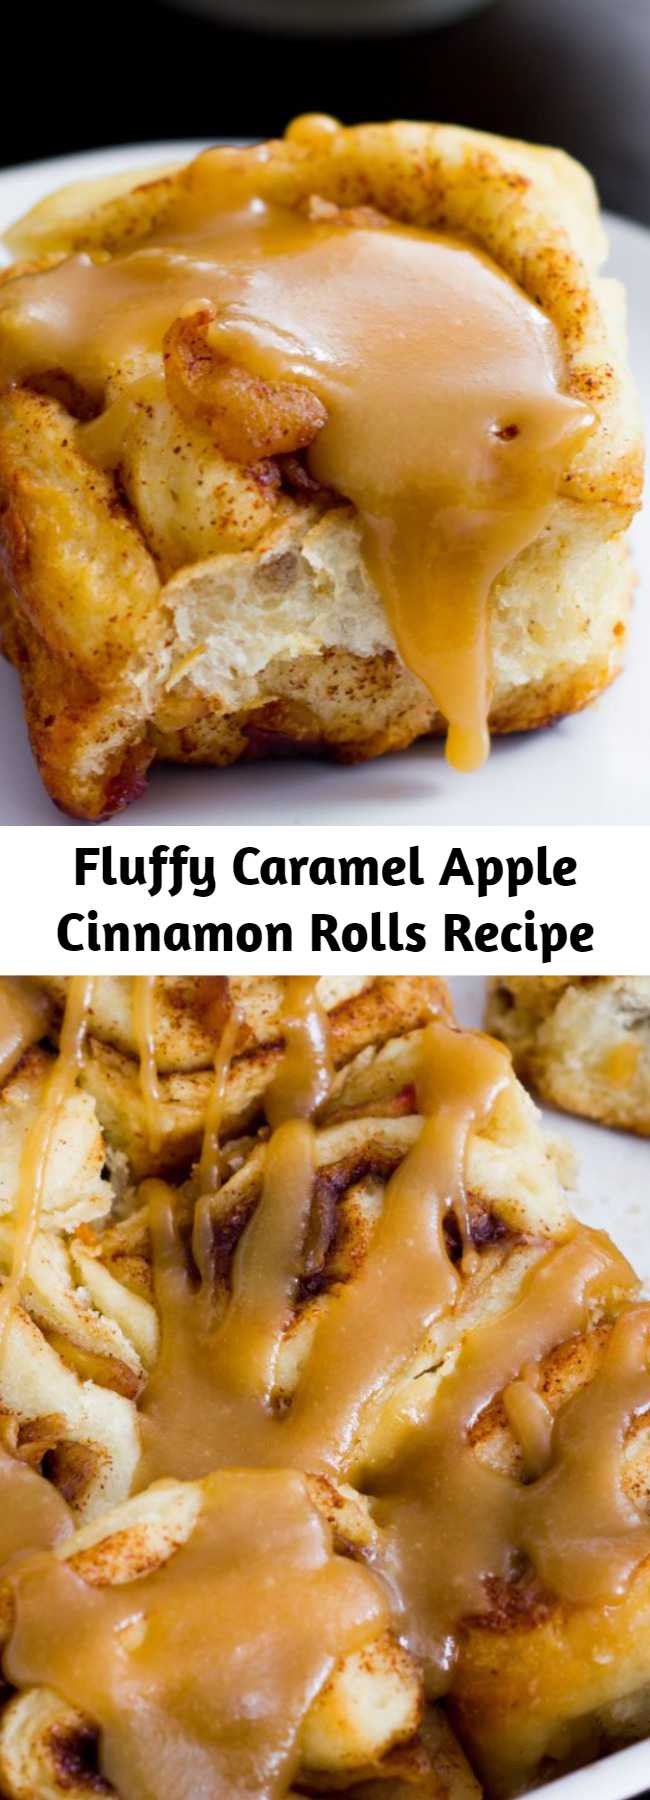 Fluffy Caramel Apple Cinnamon Rolls Recipe - Soft, fluffy cinnamon rolls stuffed with brown sugar & apples, and generously glazed with homemade caramel.